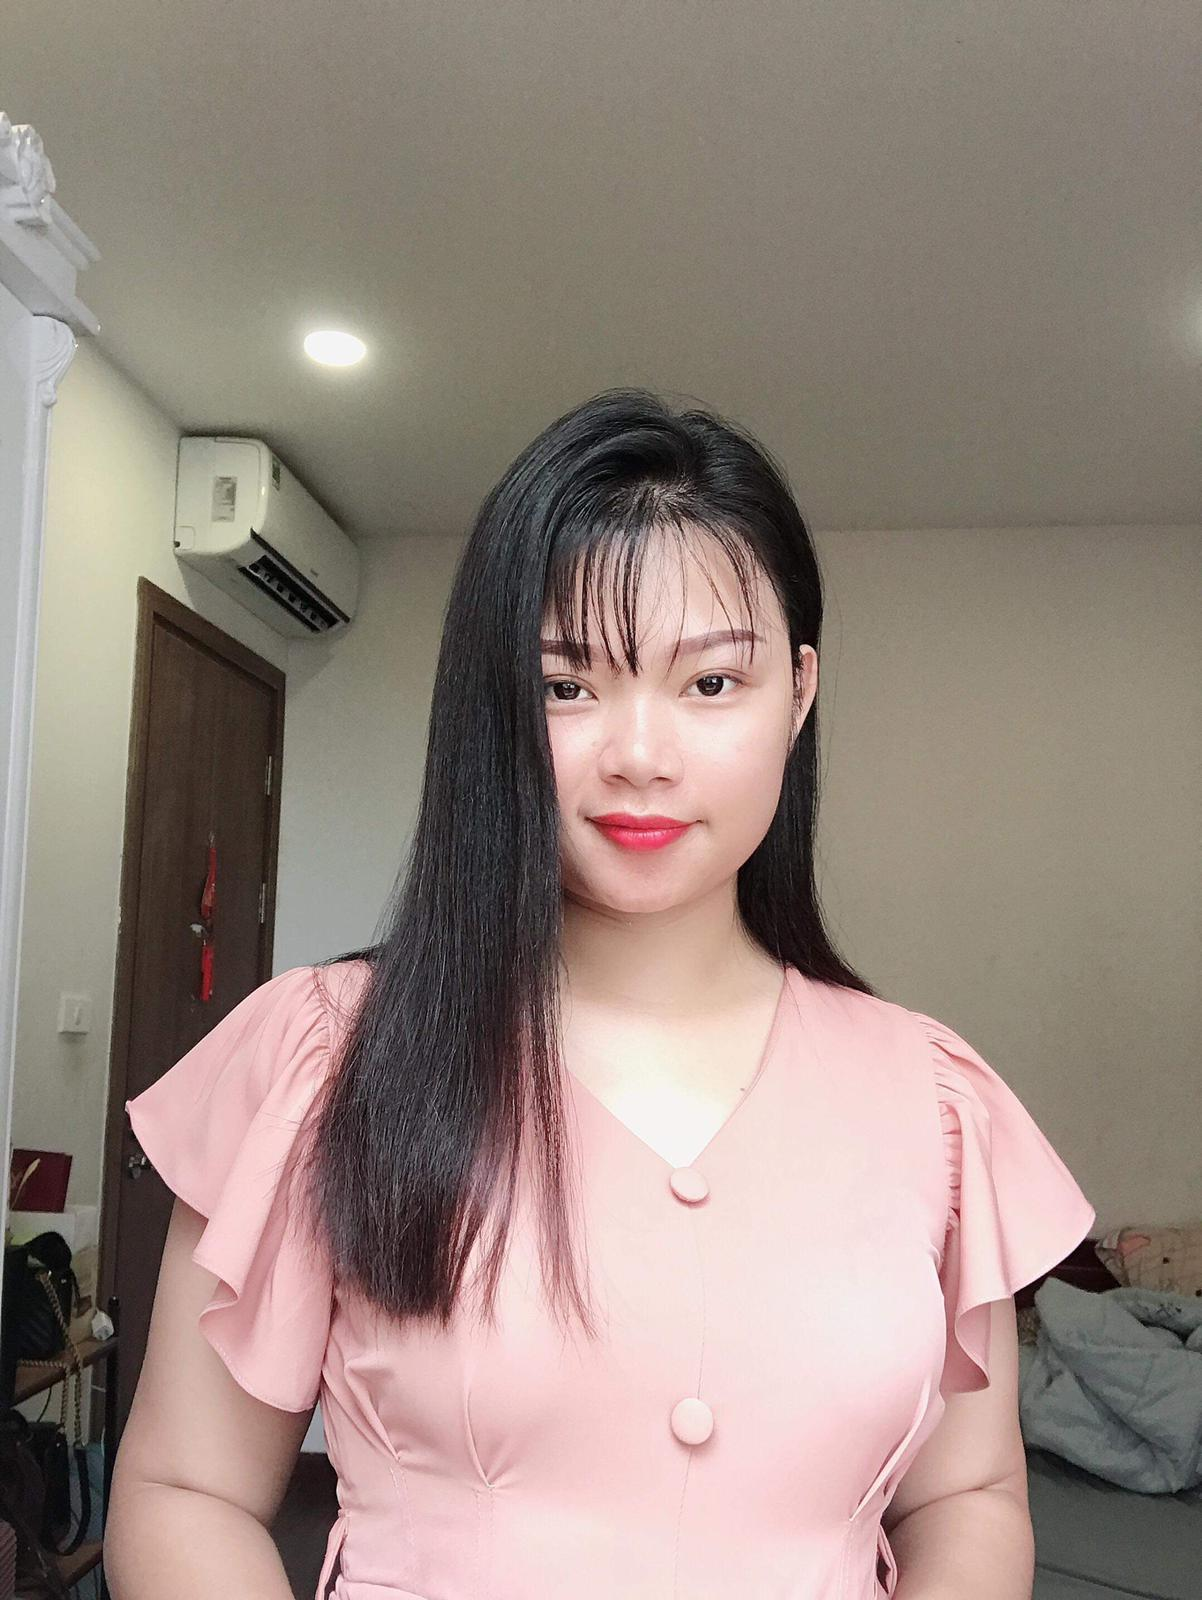 Vietnamese lady 25 years old